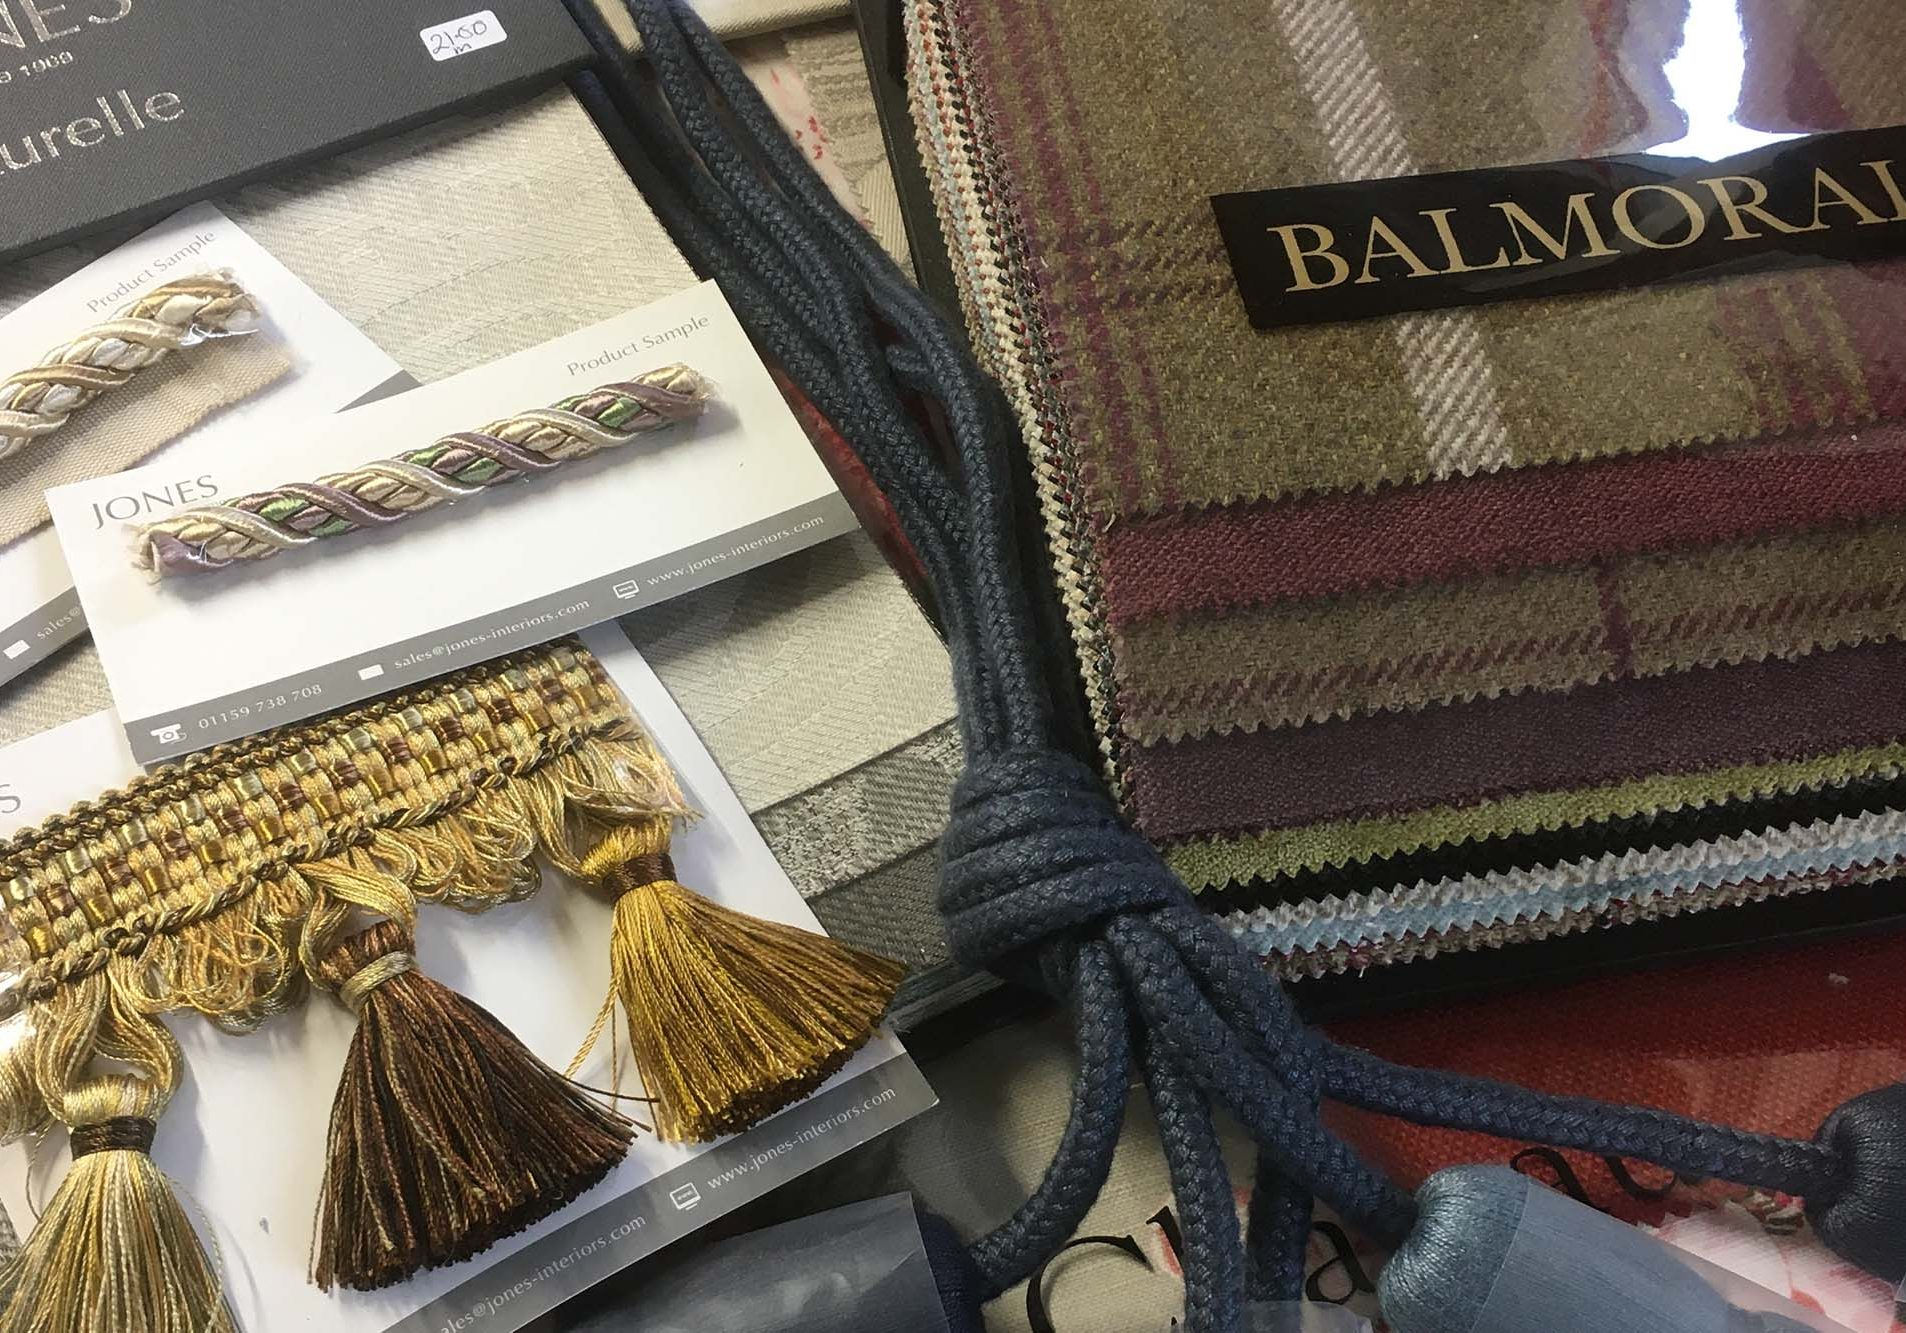 Fabric books at The Sewing Barn